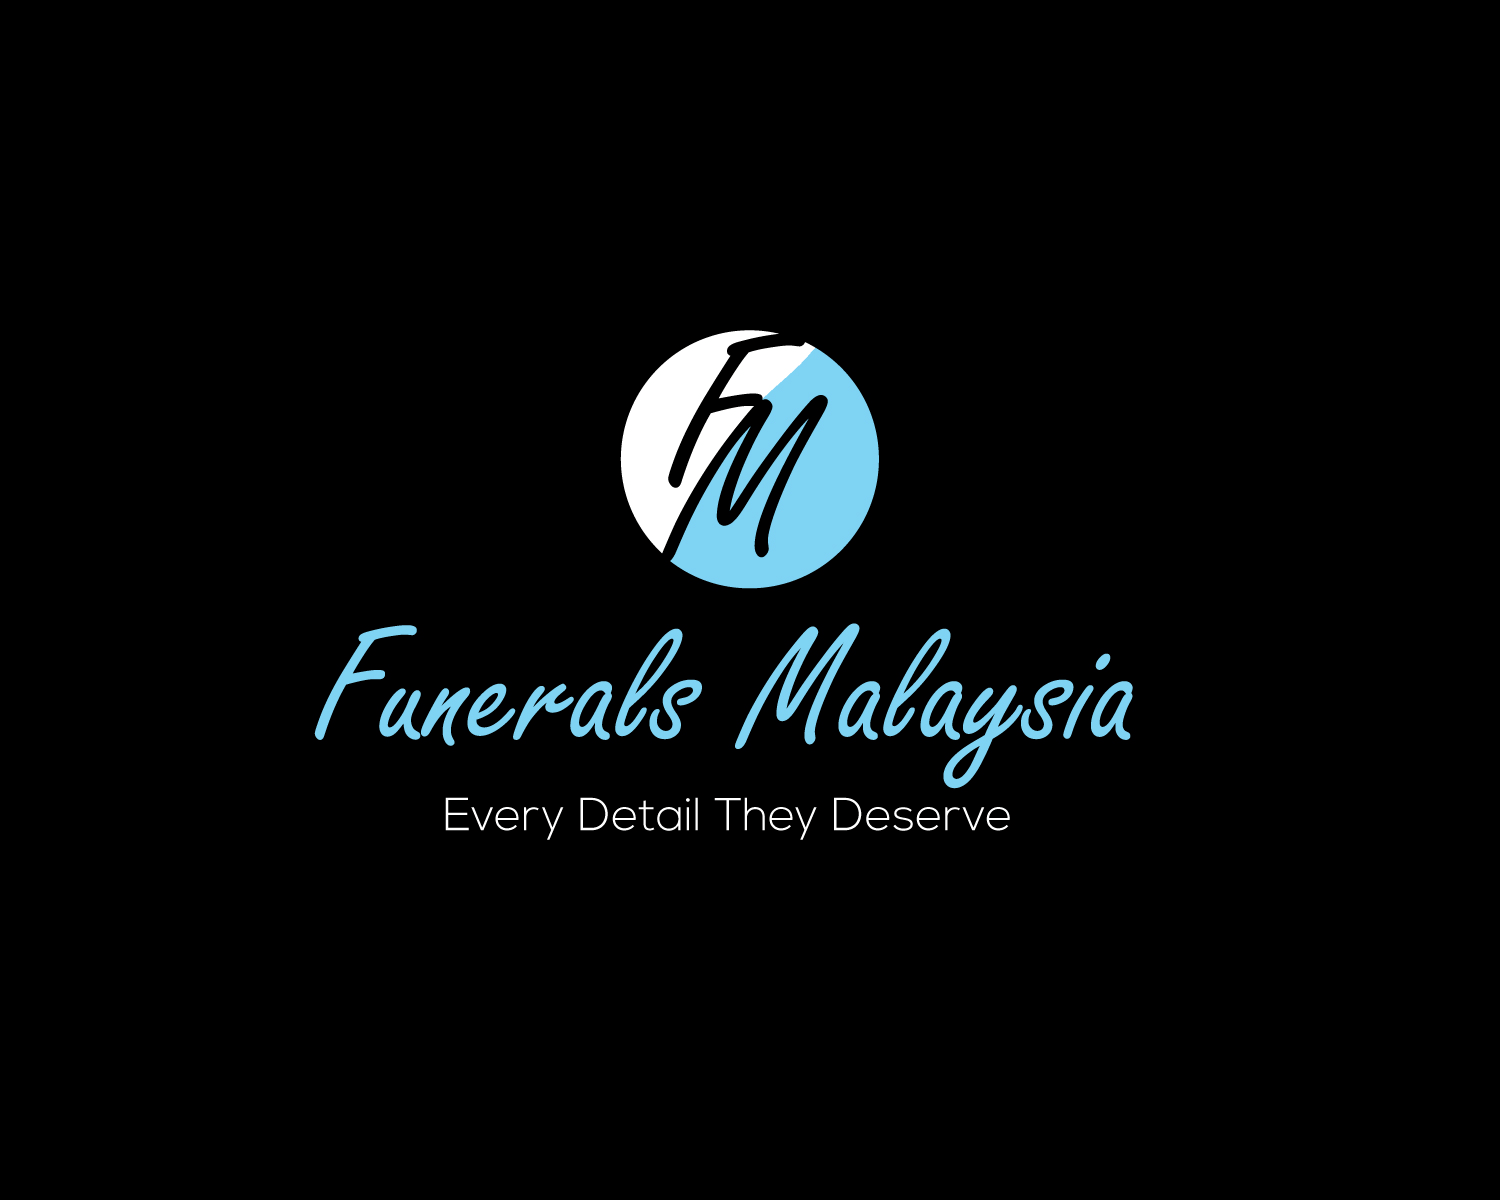 Funerals Malaysia's Logo